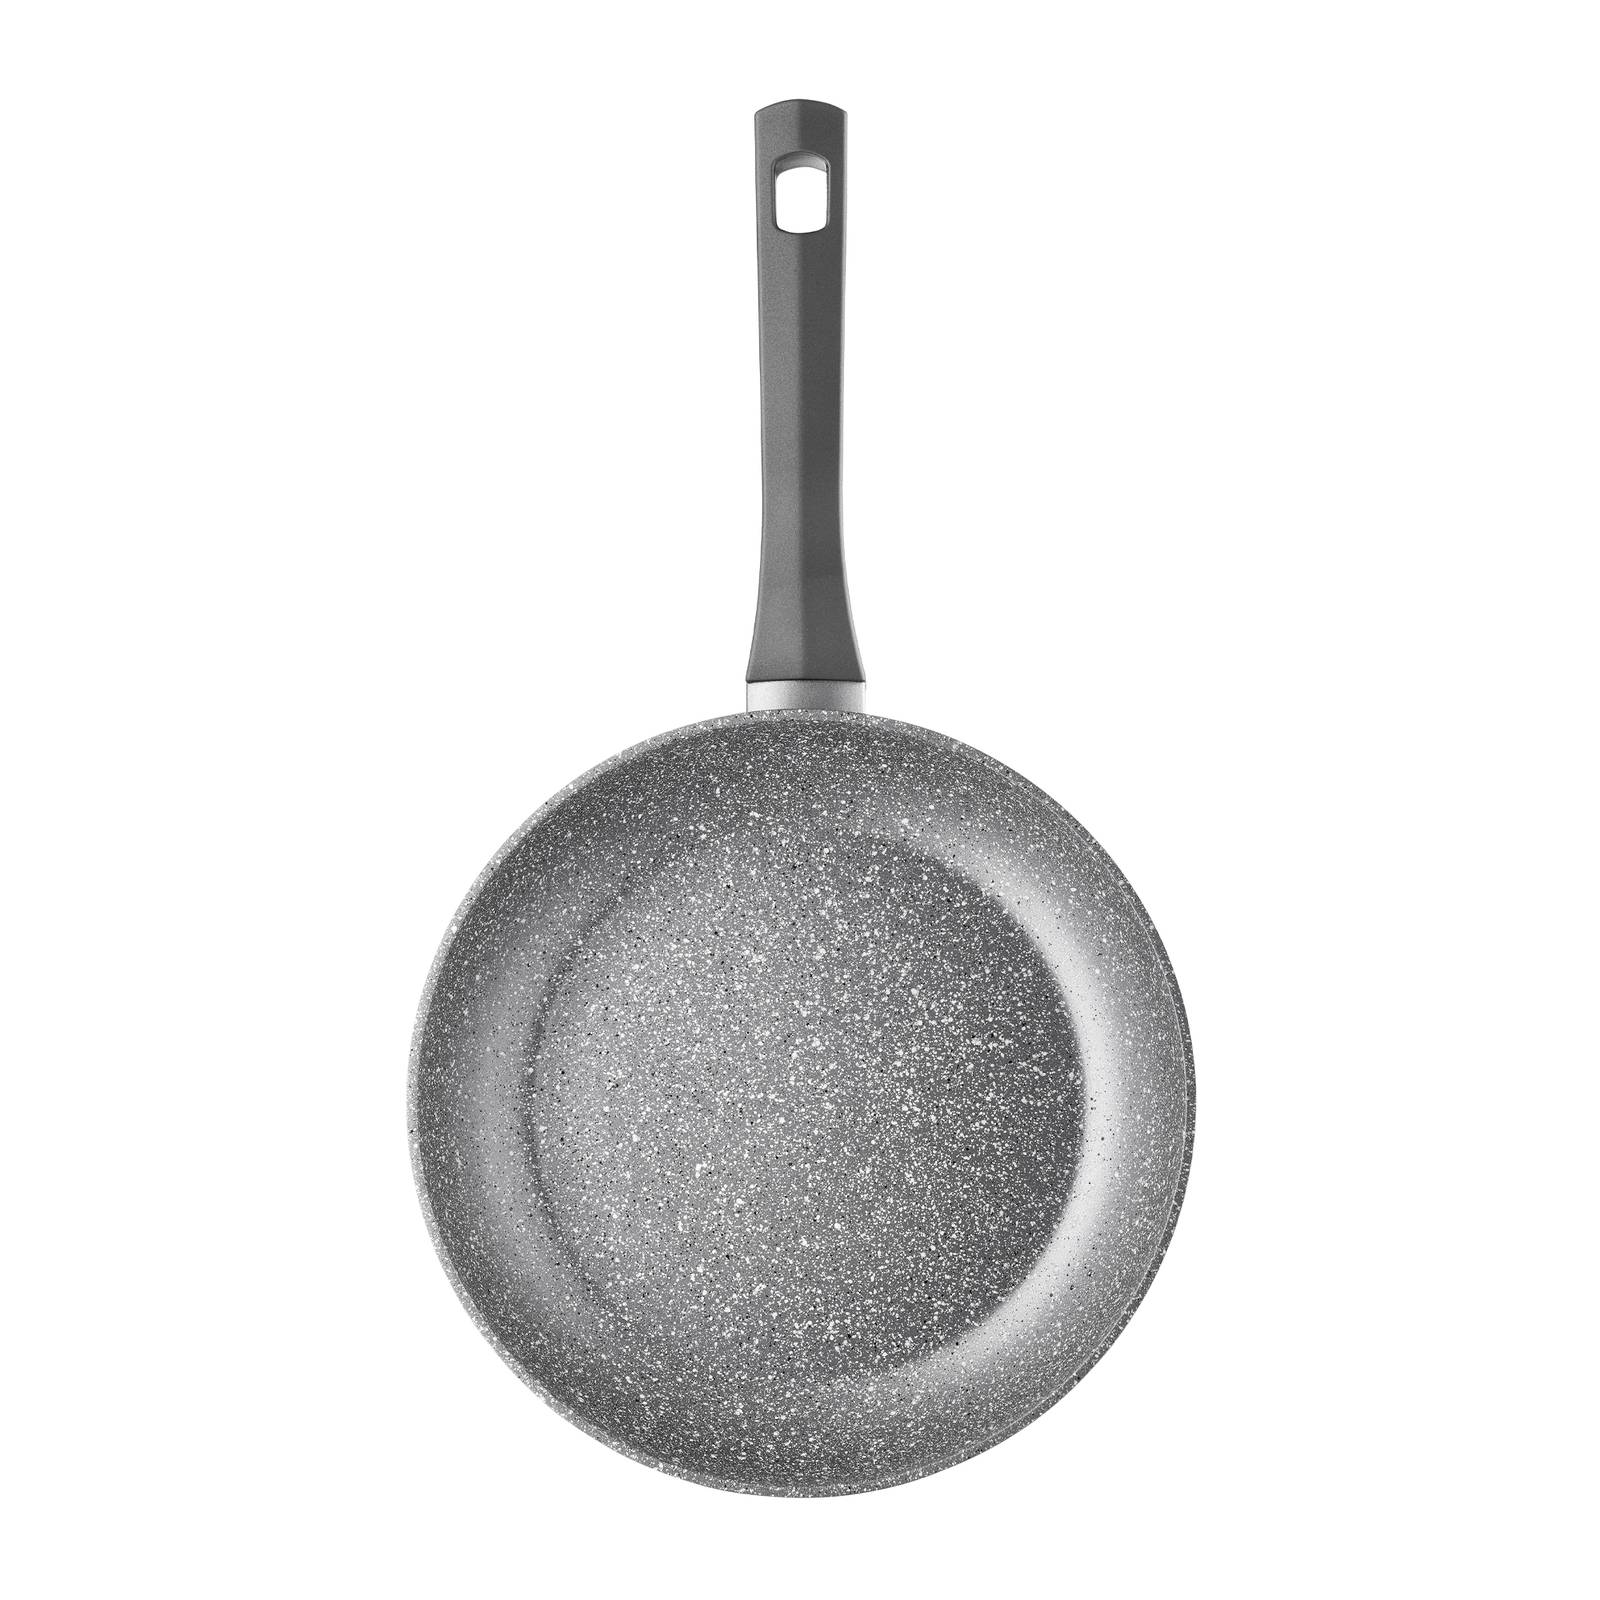 Frying pan Silverstone 20 cm Induction AMBITION